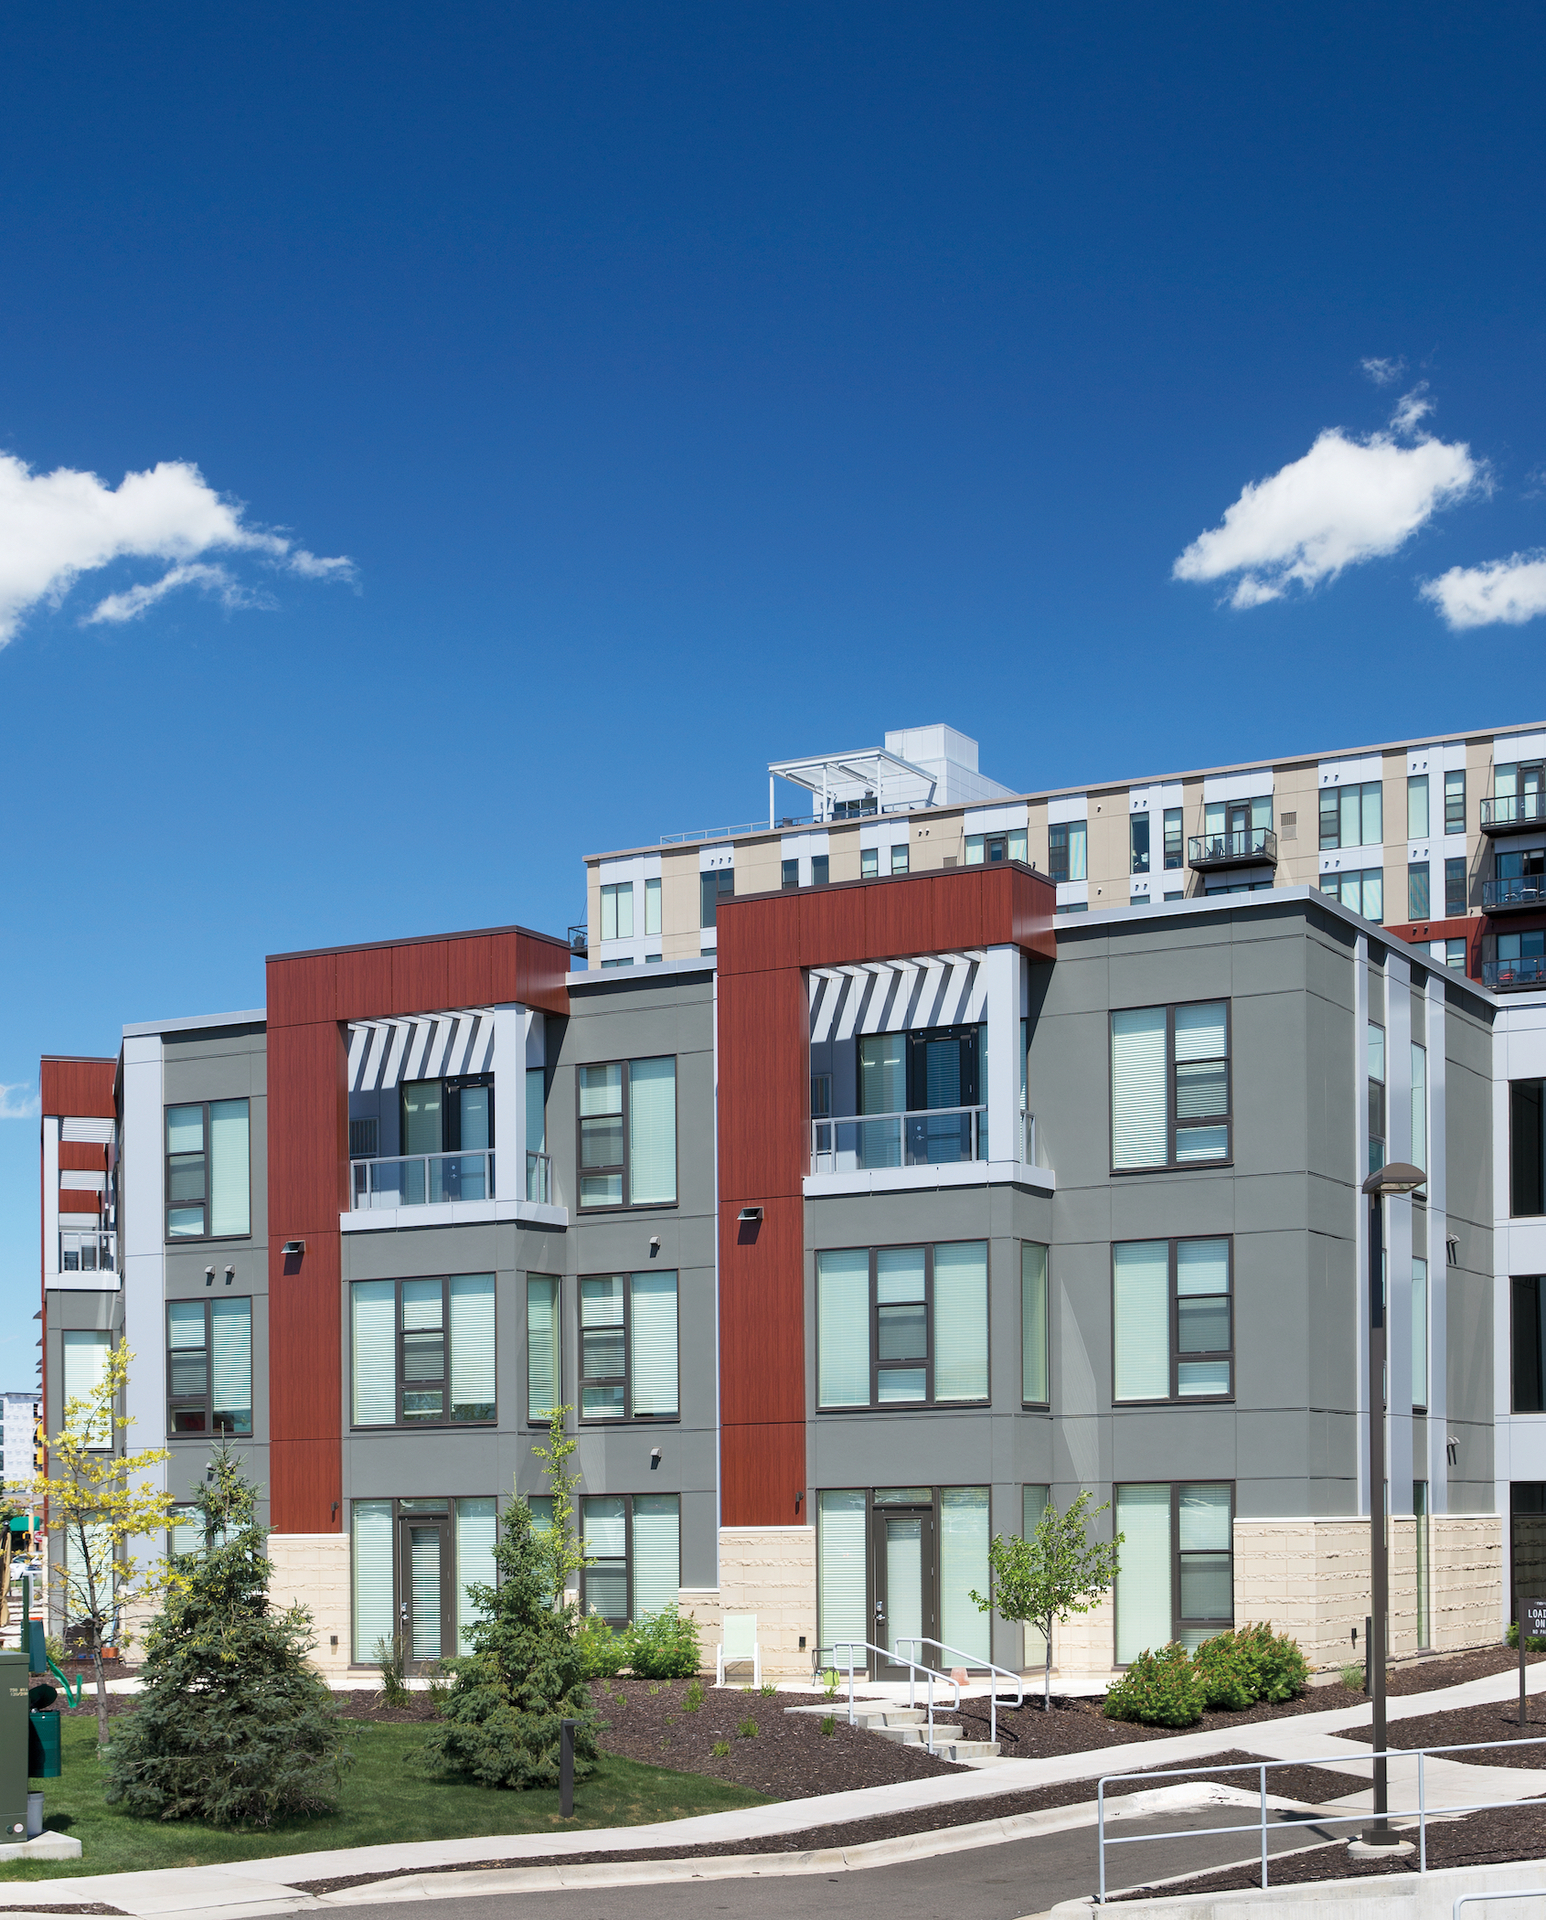 The apartment building complex compliments the design and look of the surrounding neighborhood. Modern exterior features, like the Pella® Impervia® windows and doors, add a modern aesthetic to the property.